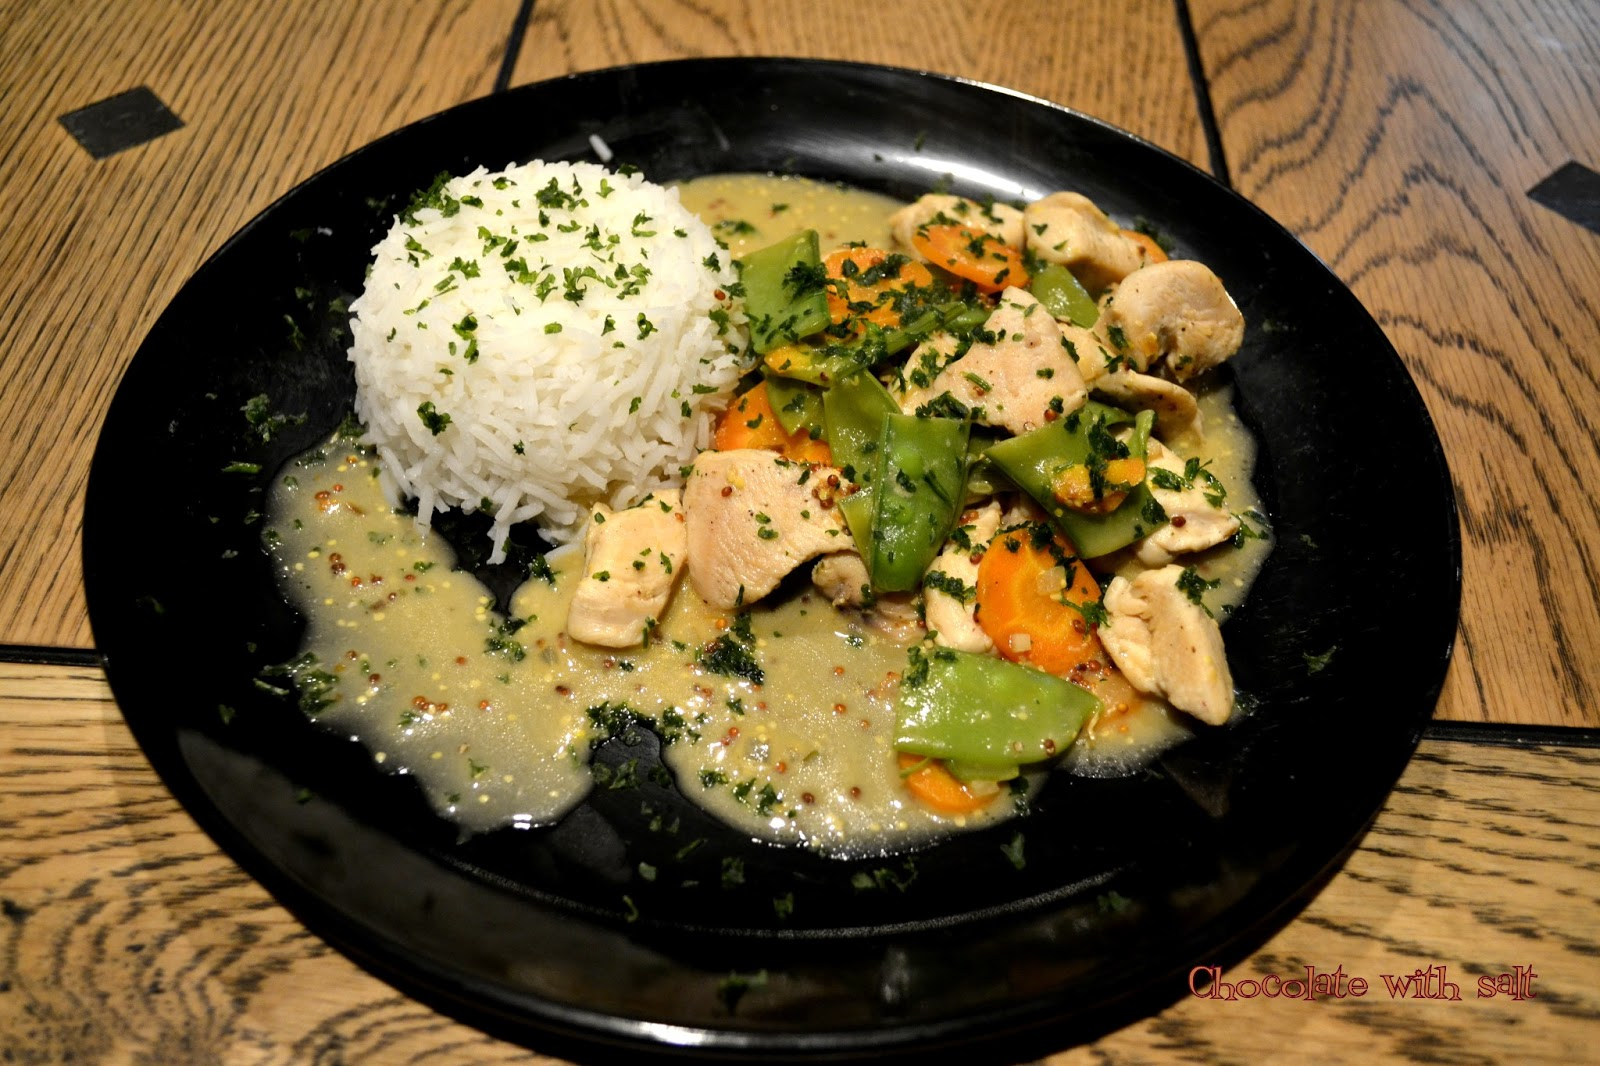 Chocolate with salt: Chicken stew with carrots and snow peas